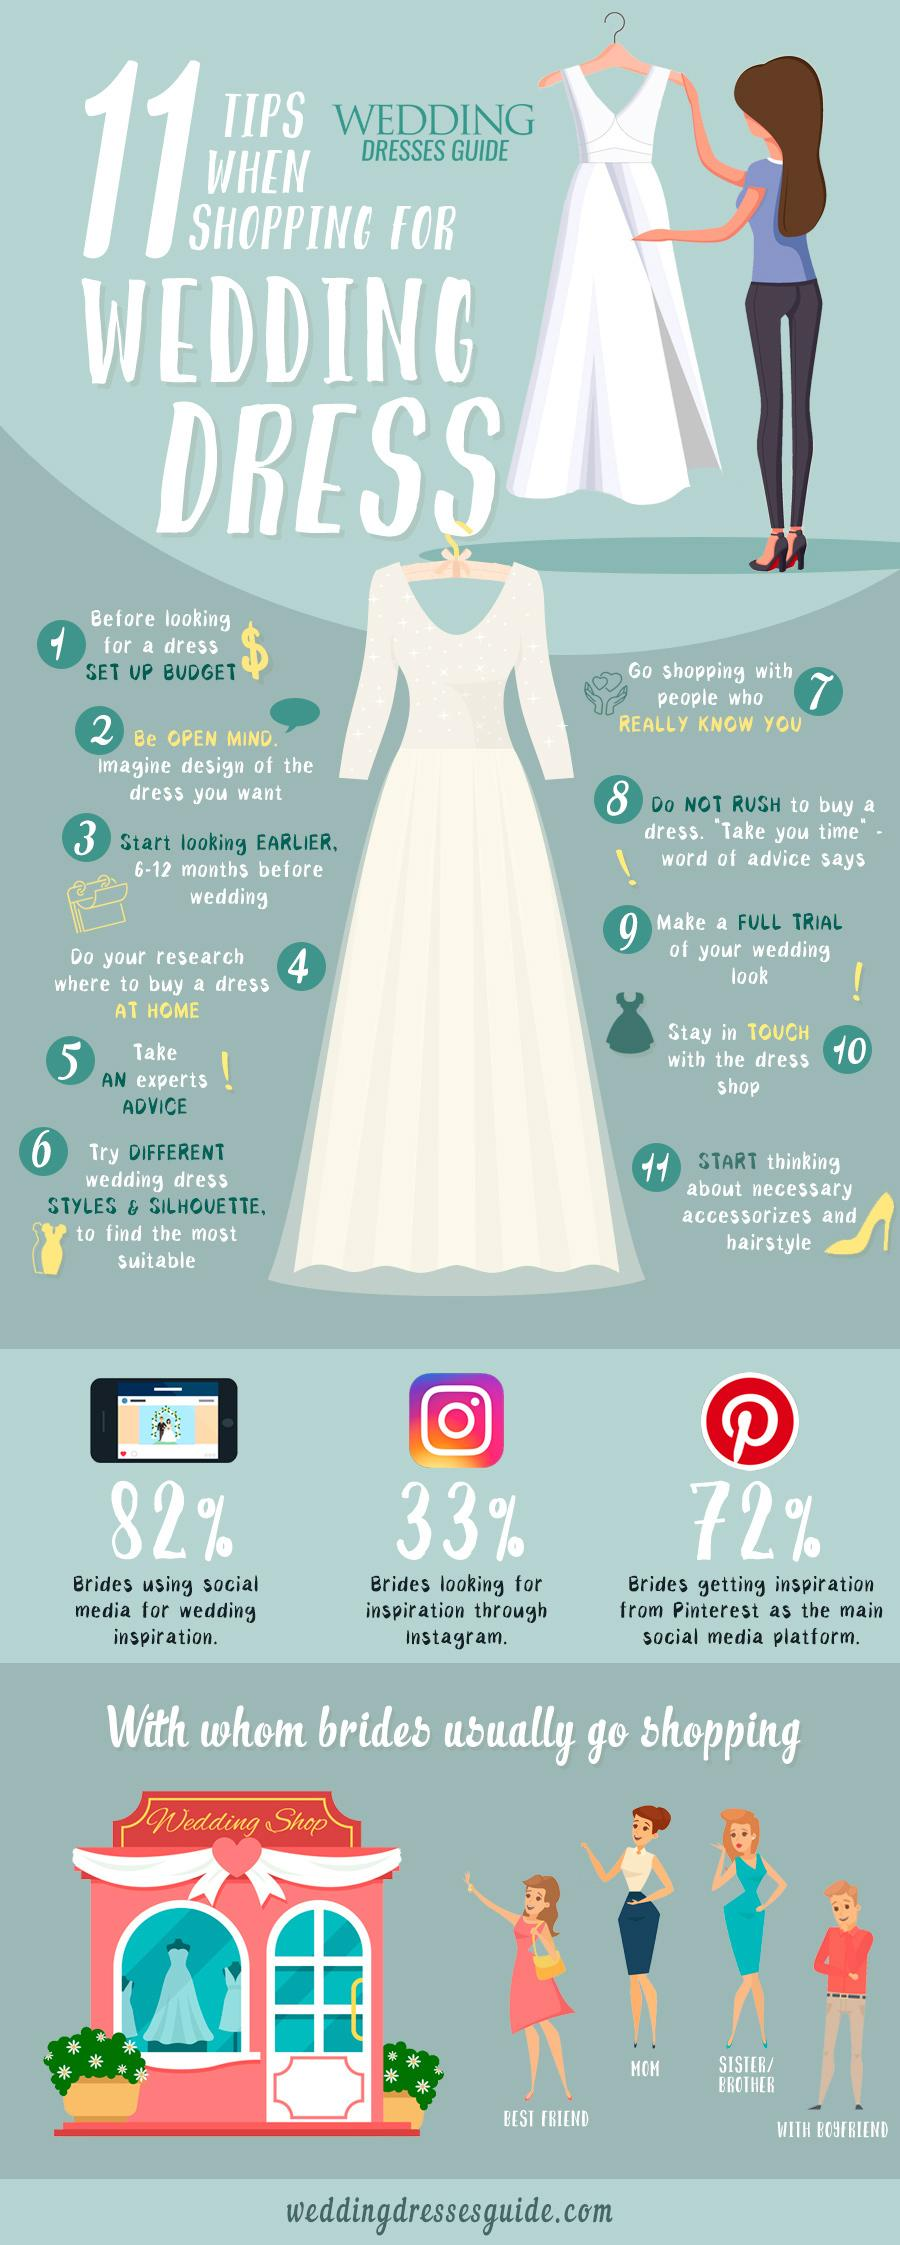 Tips To Keep In Mind When Shopping For Bridal Gowns